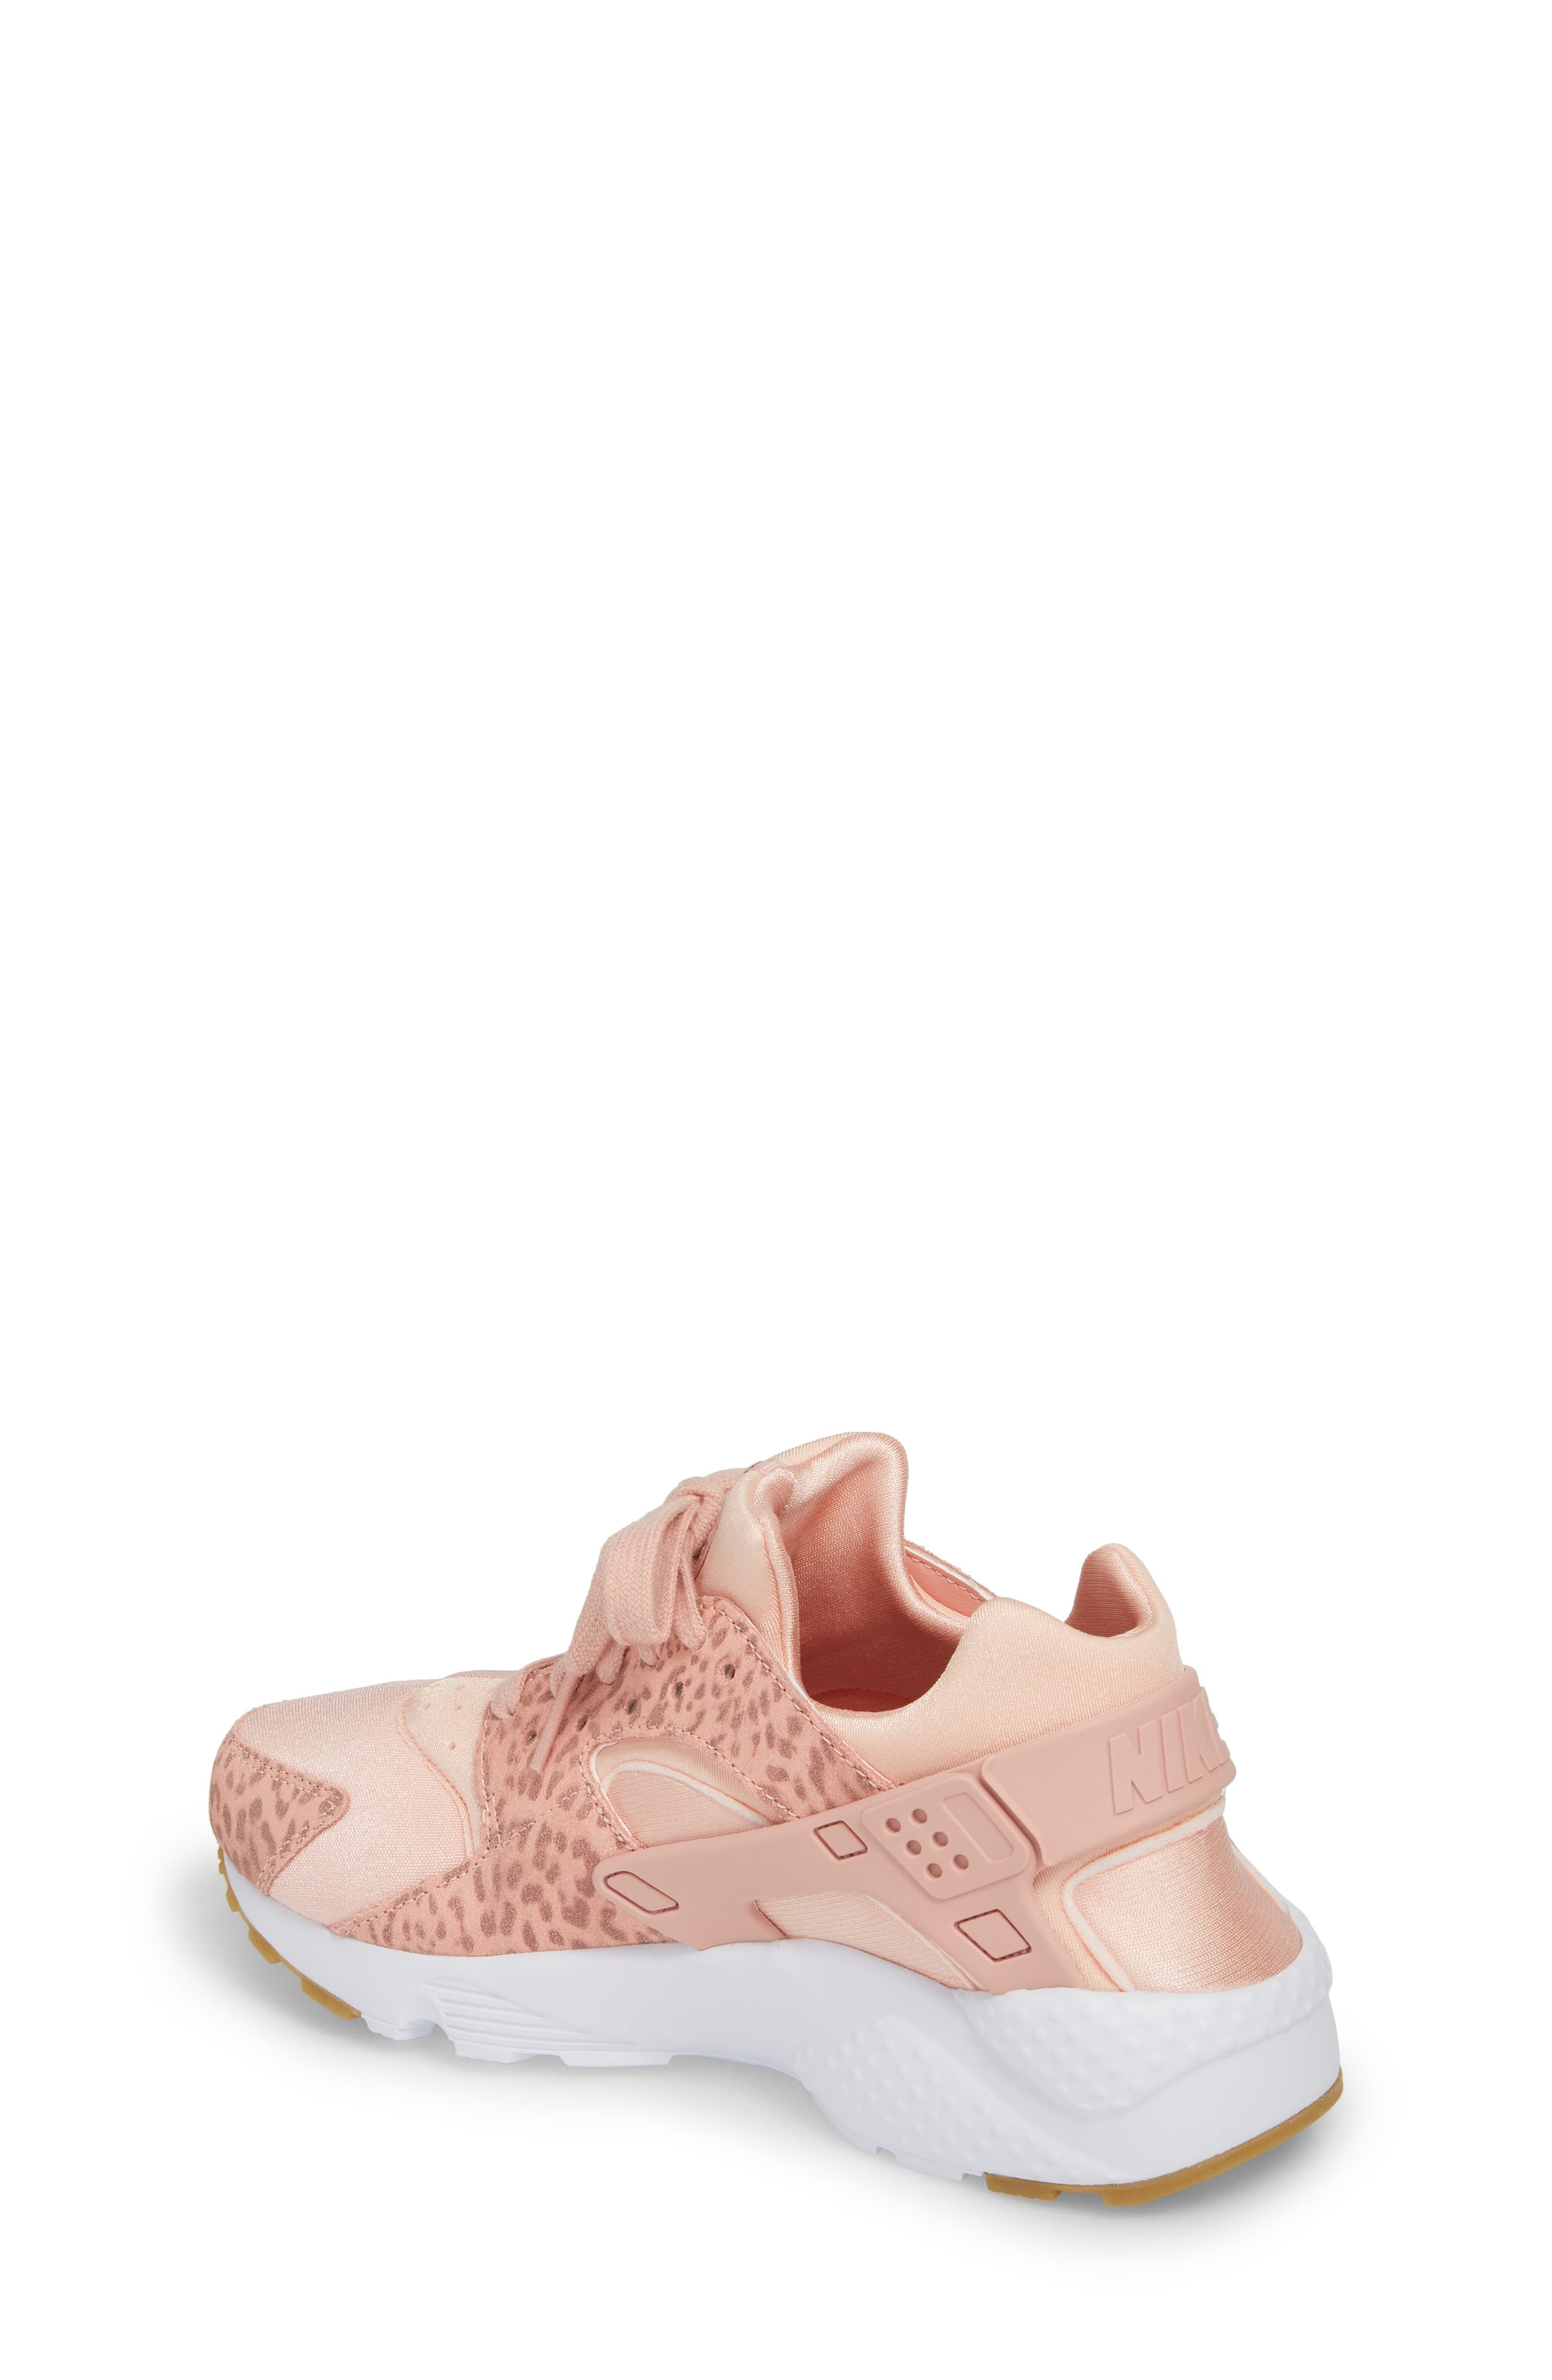 Huarache Run SE Sneaker,                             Alternate thumbnail 2, color,                             Coral Stardust/ Rust Pink/ Gum